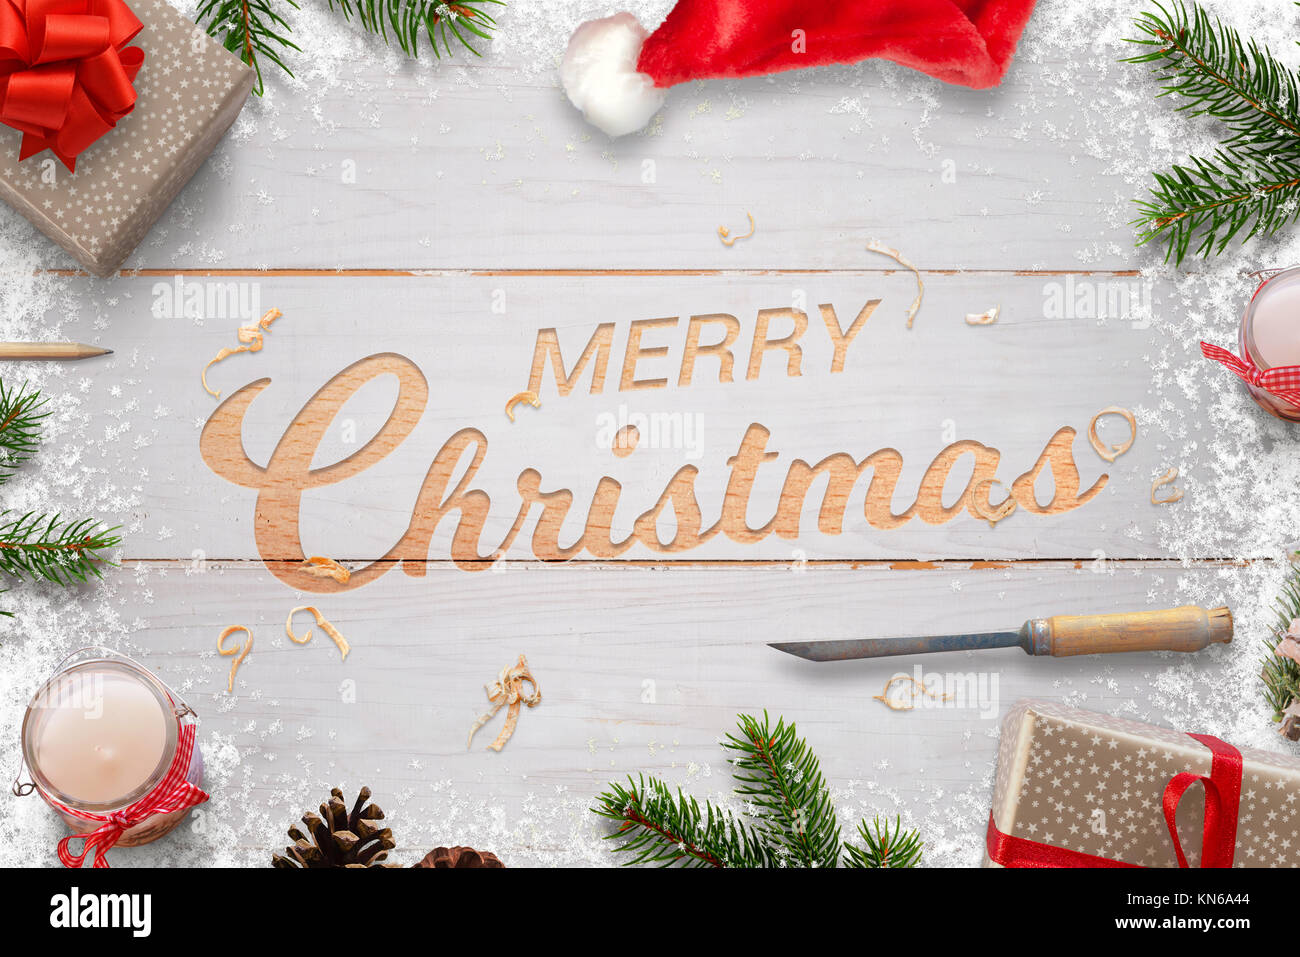 Christmas carving in white wooden board. Merry Christmas greeting text surrounded with decorations. - Stock Image